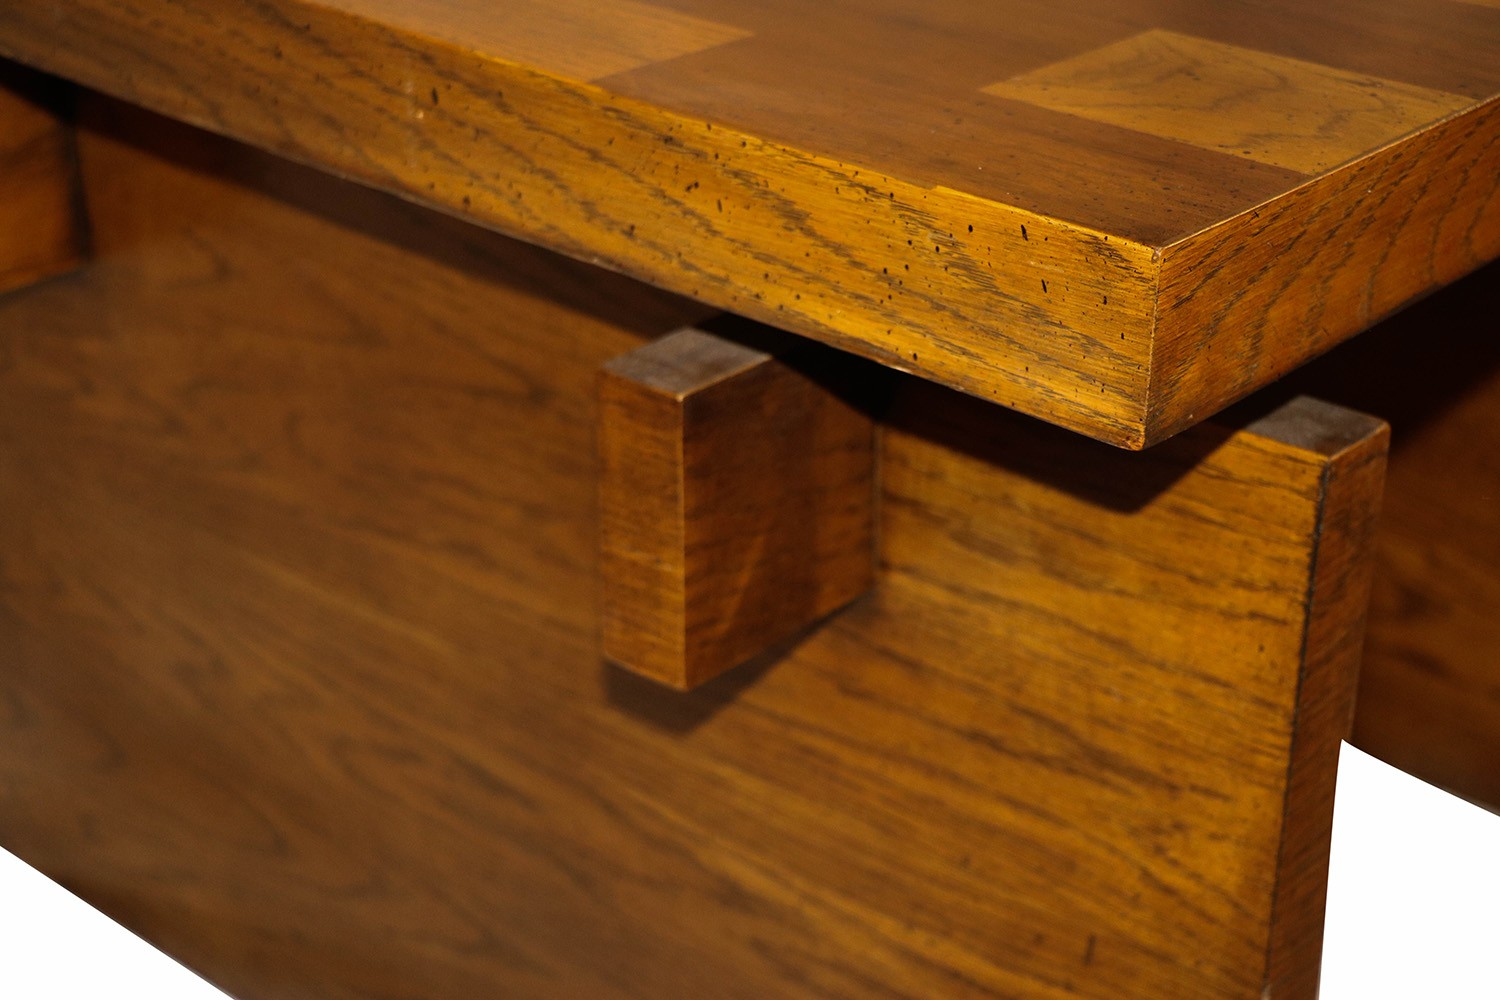 Small Runner For Coffee Table